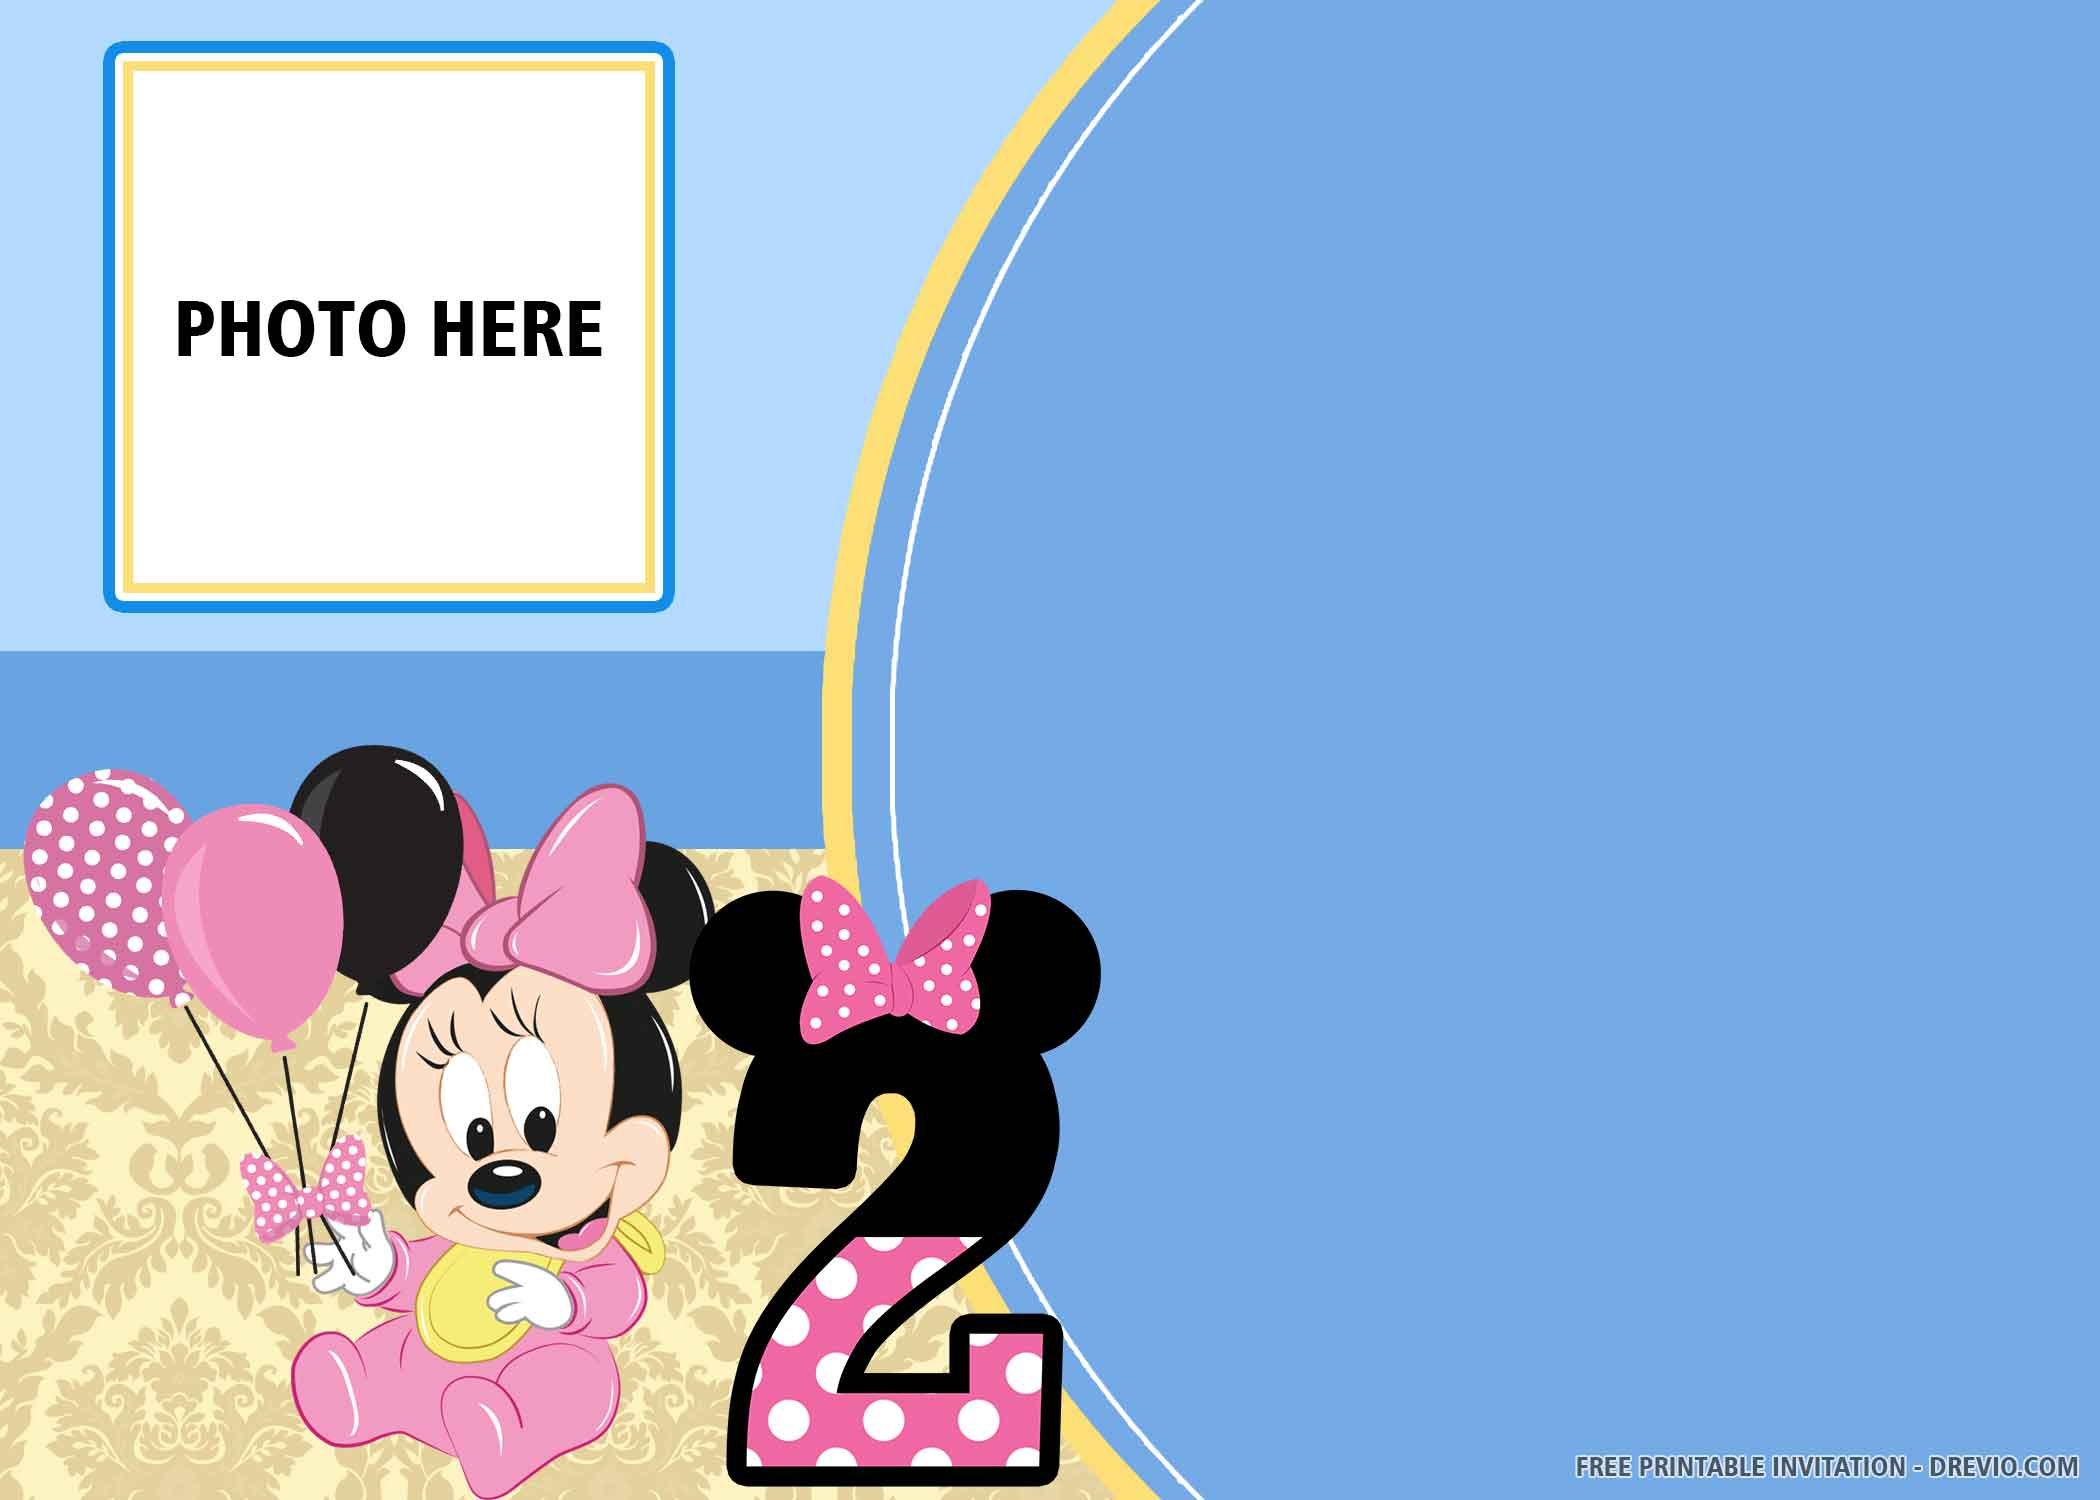 Free Printable Blue Mickey And Minnie Mouse Birthday